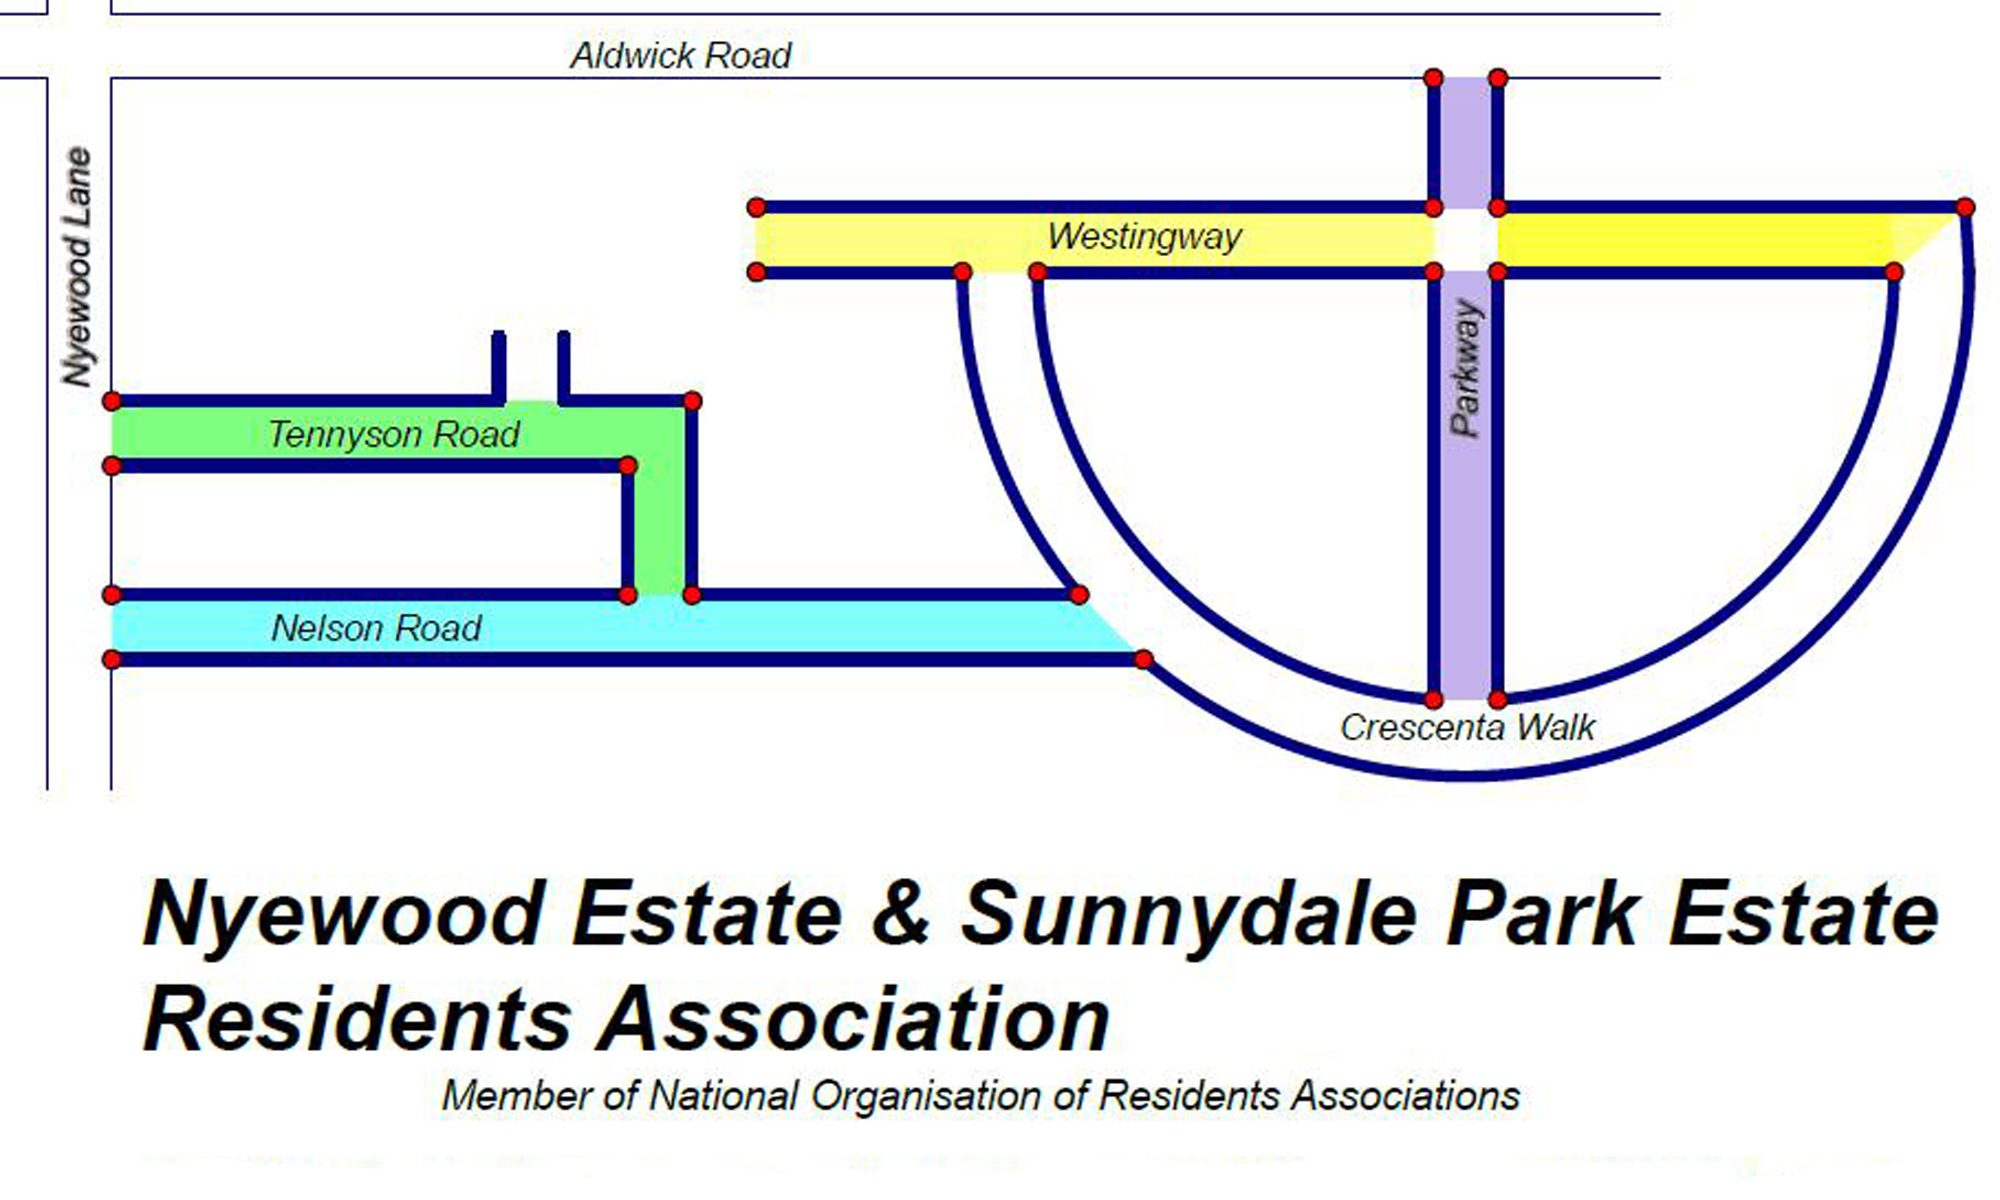 Contact your Residents Association